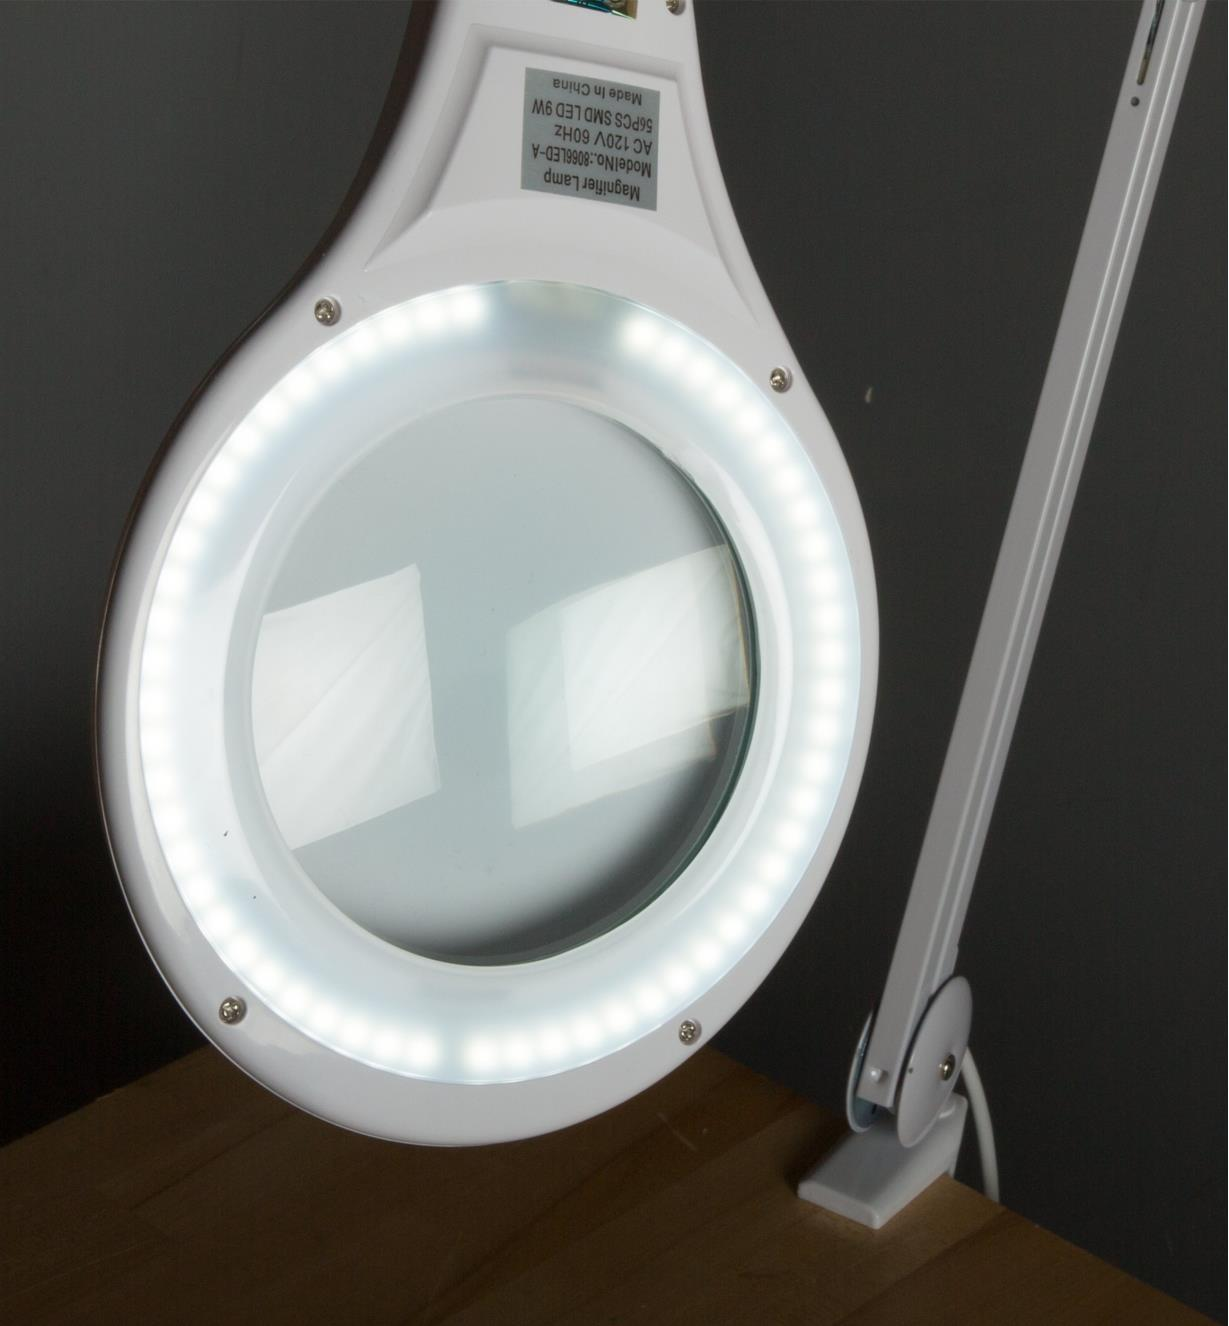 Underside view of lamp, showing LEDs